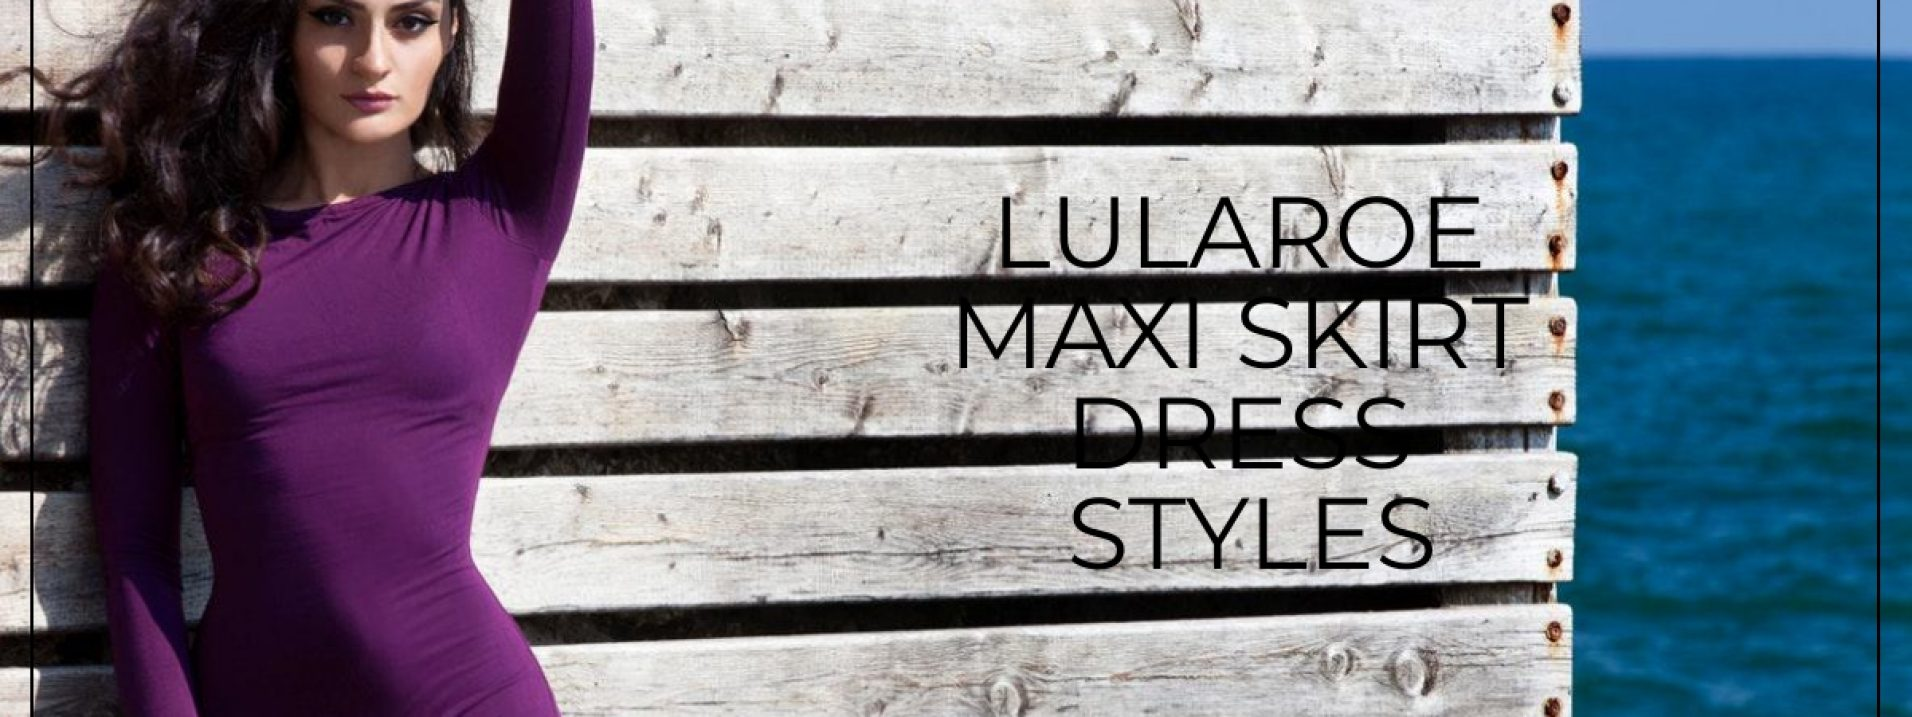 LuLaRoe Maxi Skirt Dress Styles